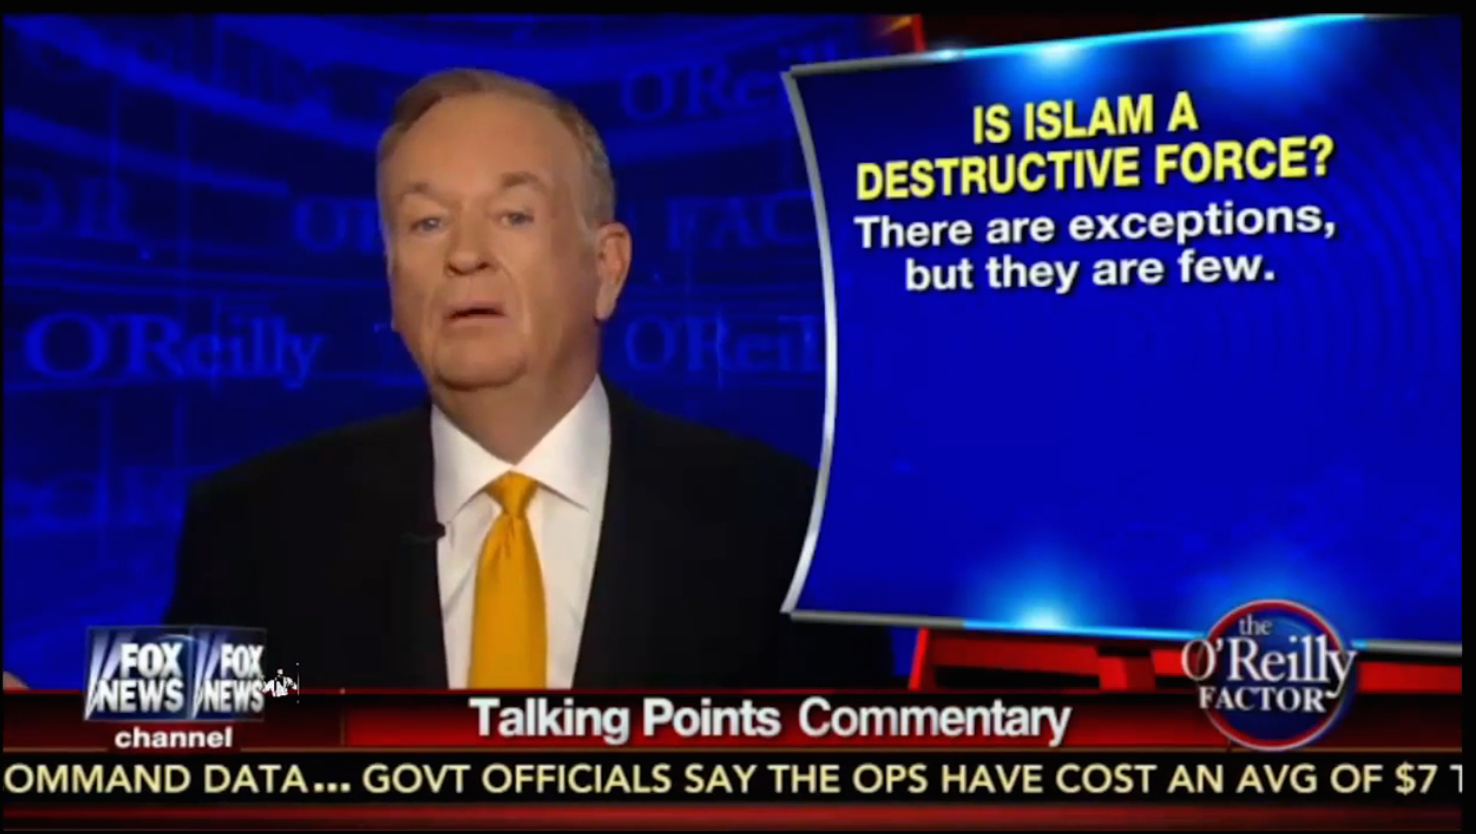 It's not just Fox News: Islamophobia on cable news is out of control